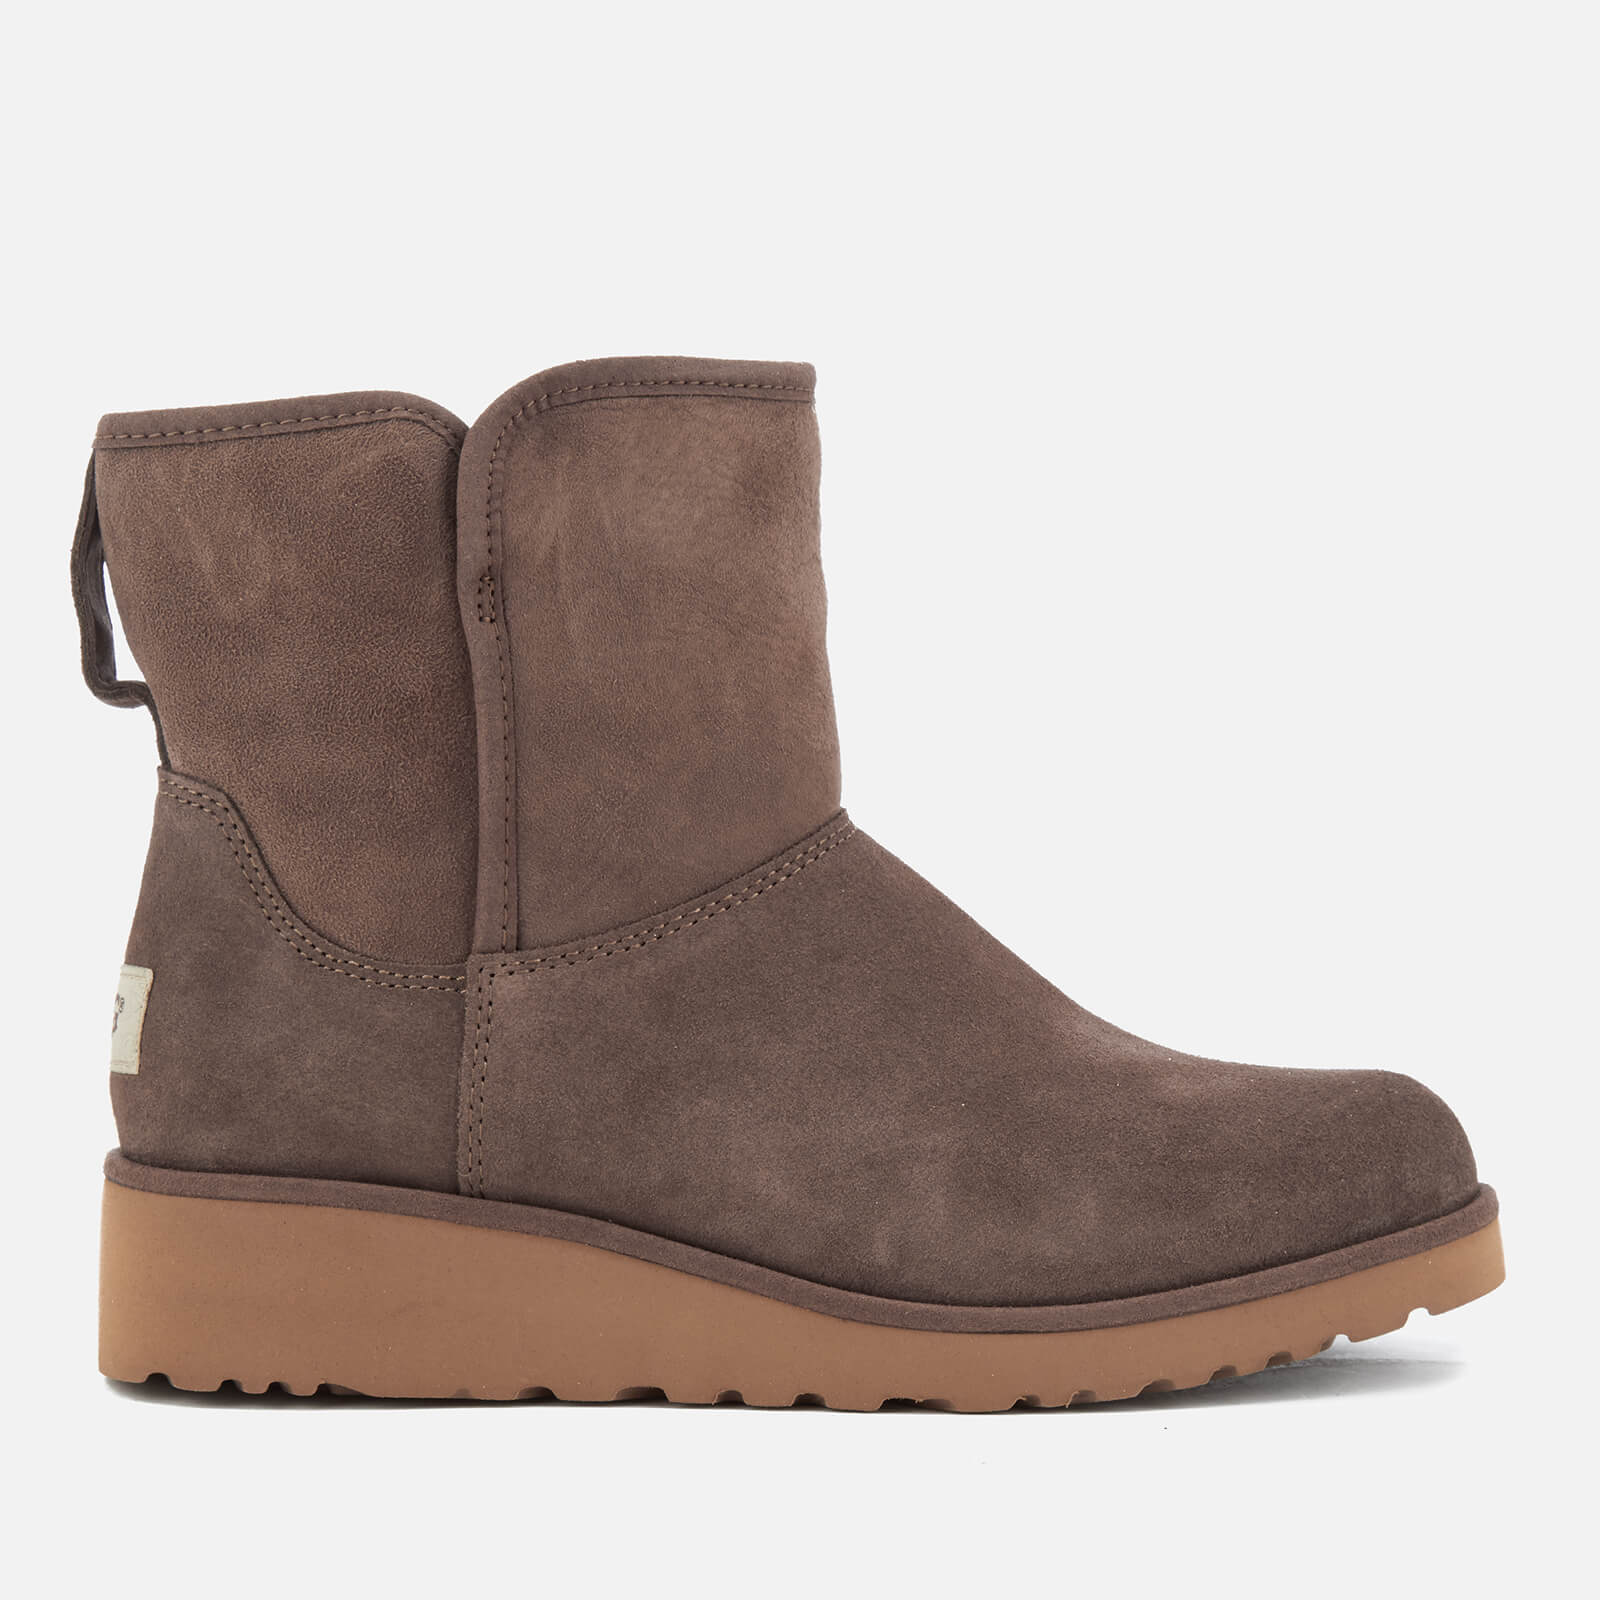 af600f65bf4a UGG Women s Kristin Classic Slim Sheepskin Boots - Slate - Free UK Delivery  over £50